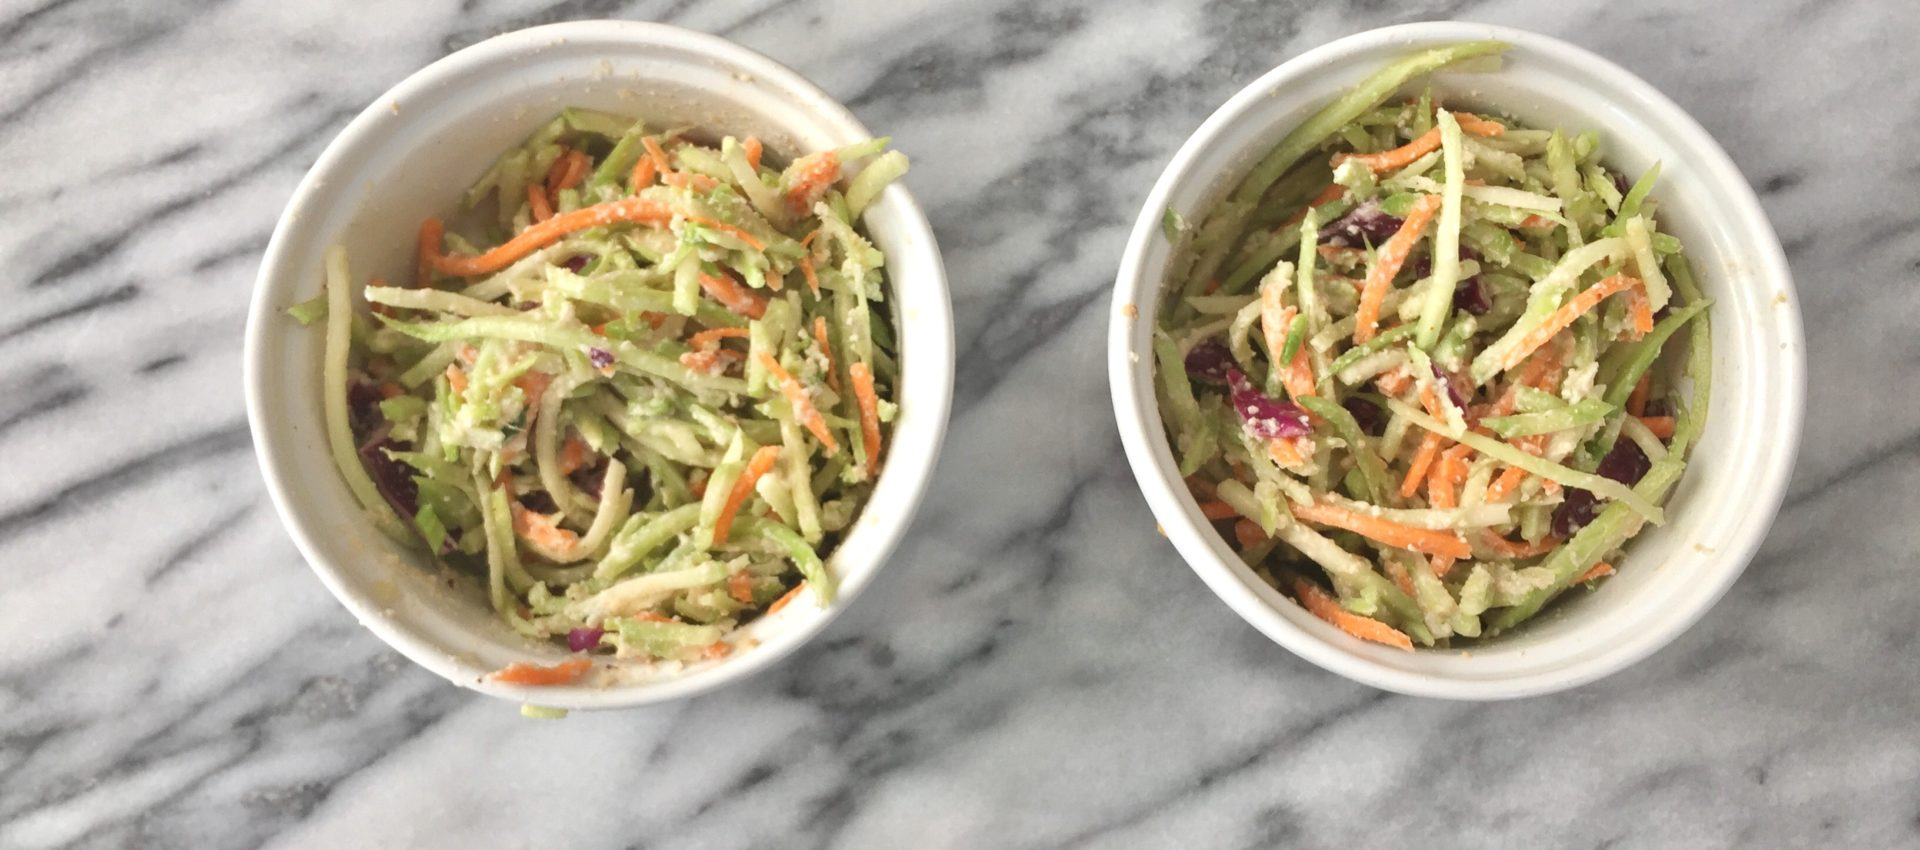 two bowls of dairy free coleslaw